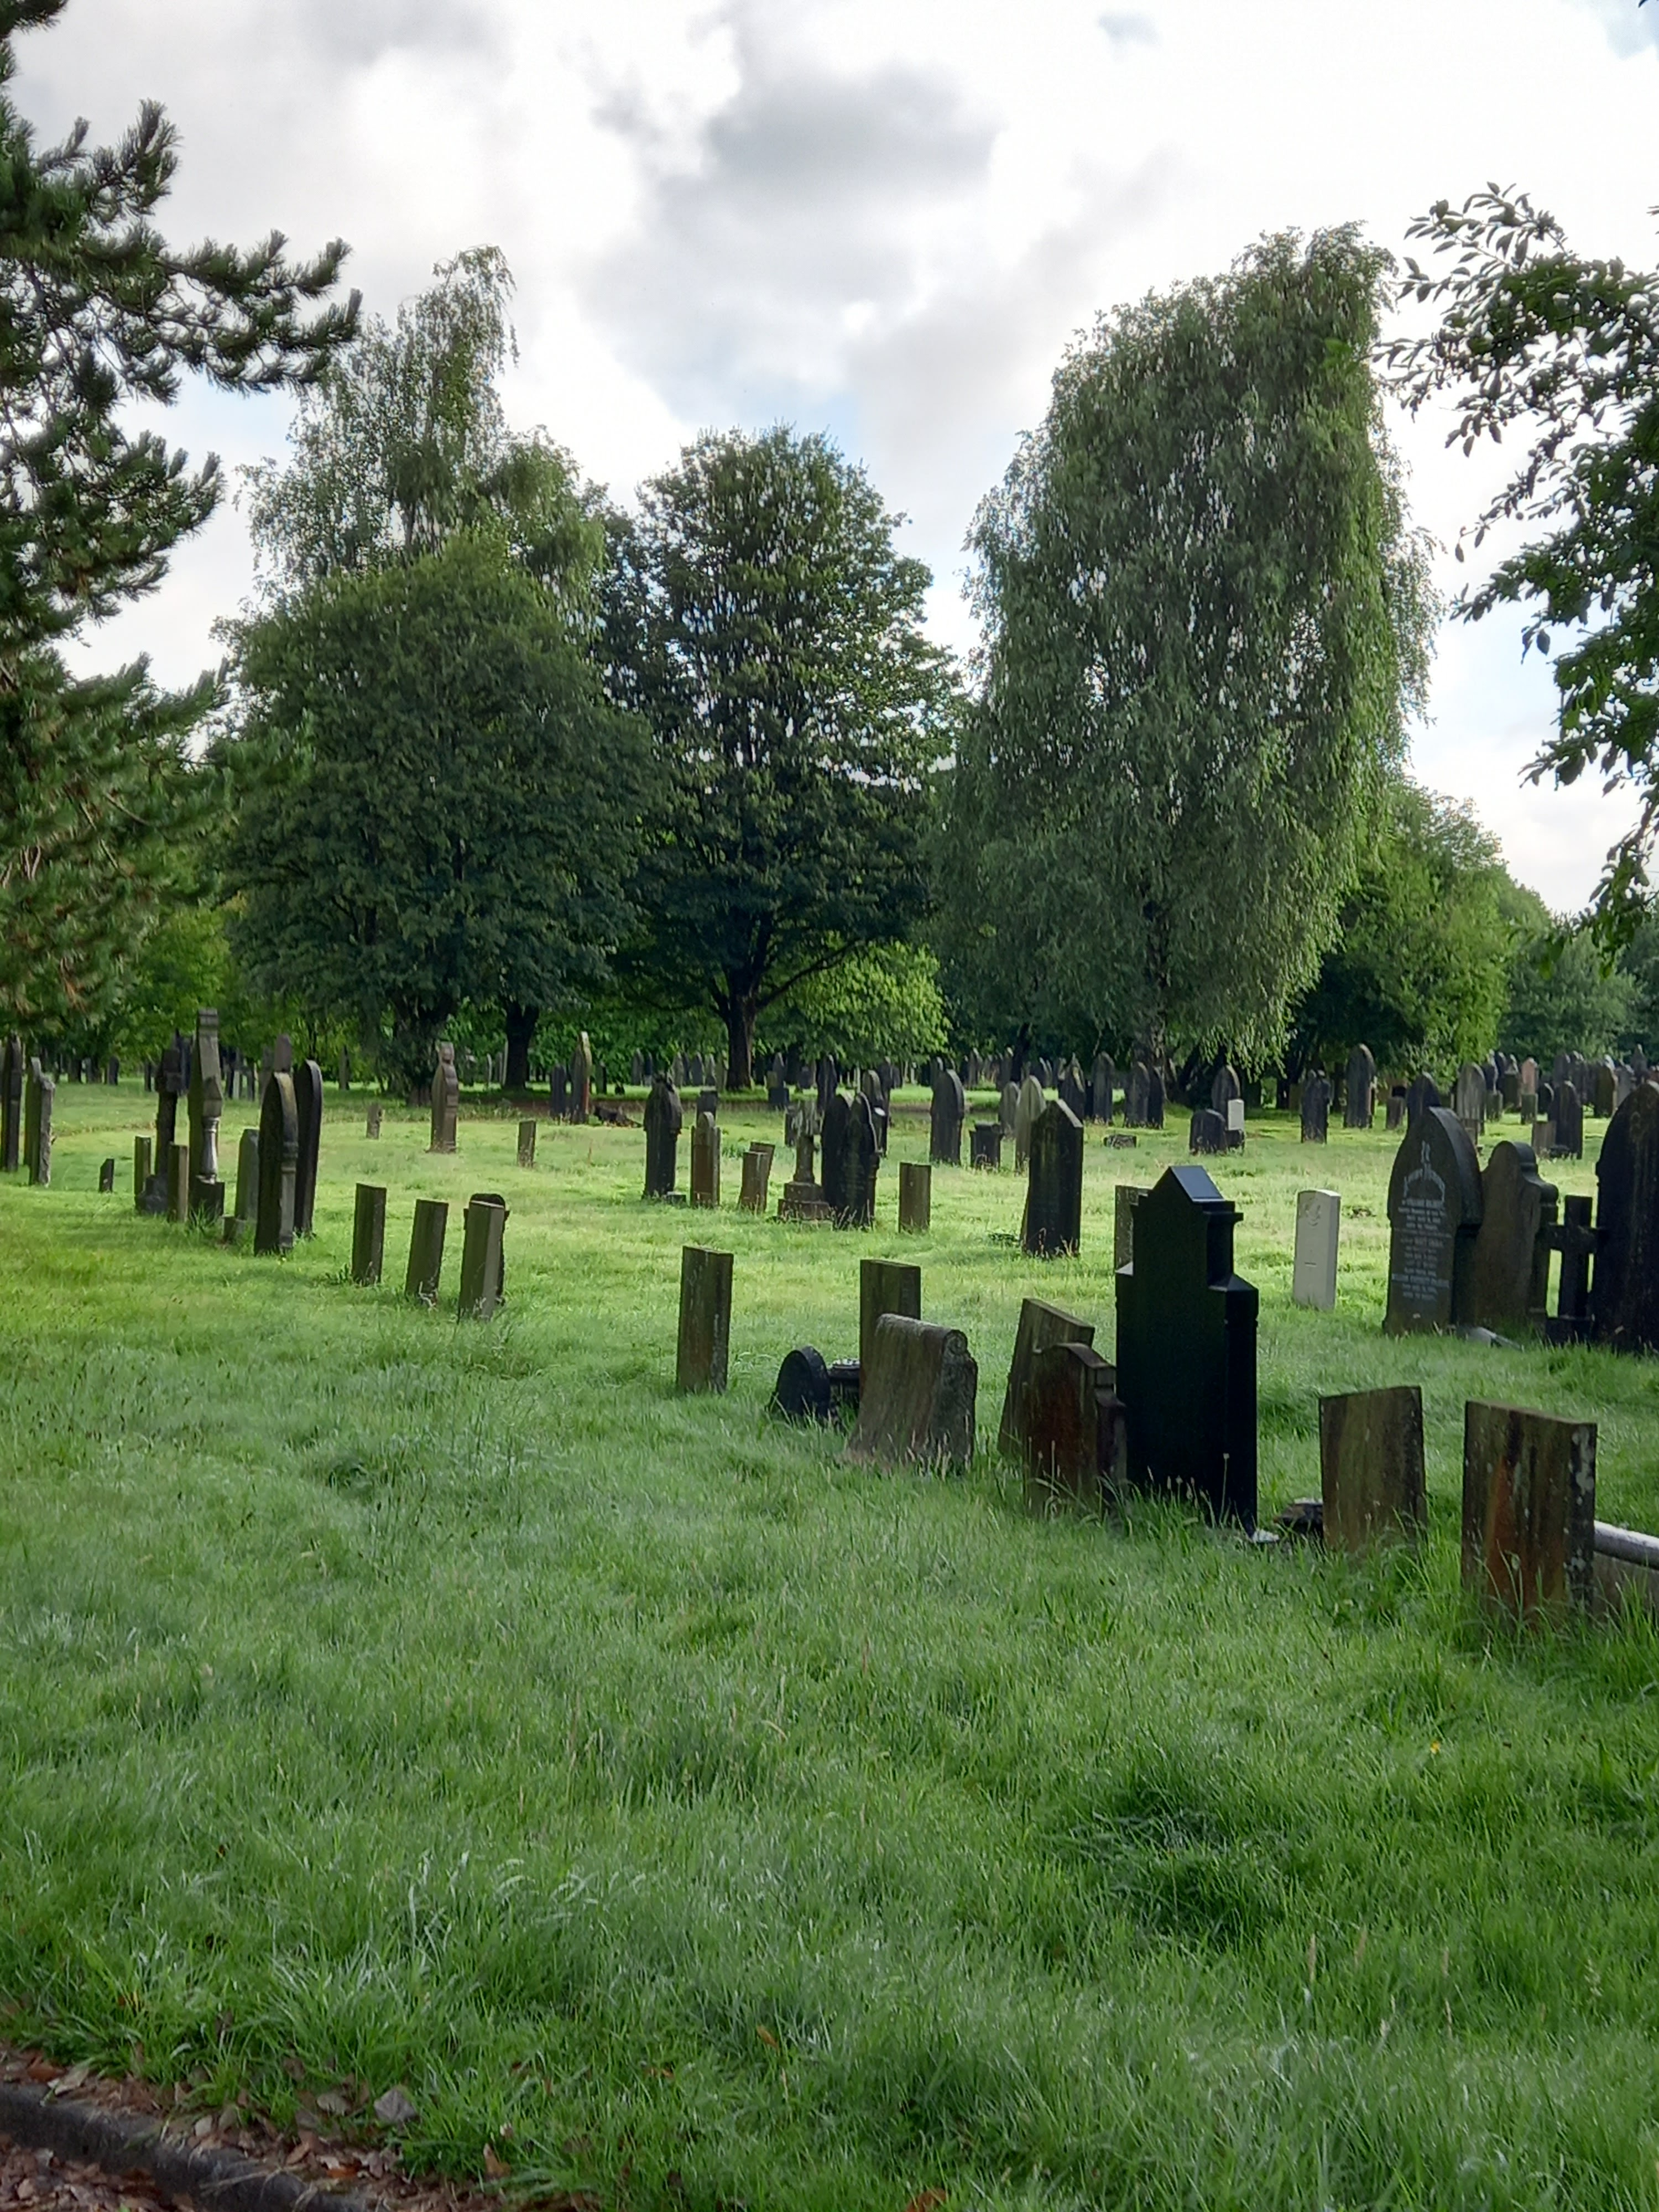 Photo of rows of Victorian grave stones taken by Diane Woodrow